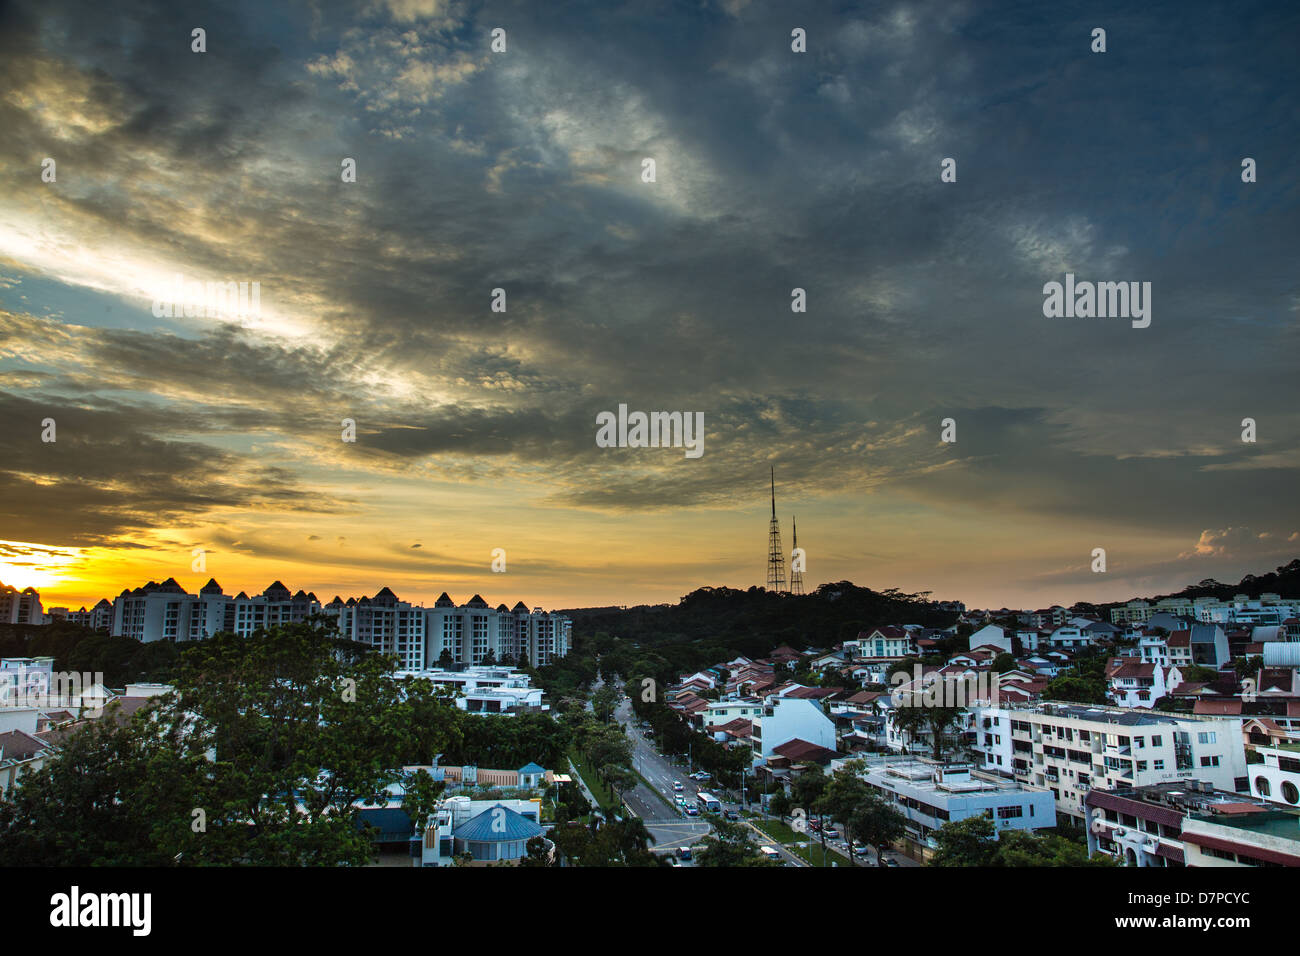 Sunset of Bukit Timah, Singapore - Stock Image